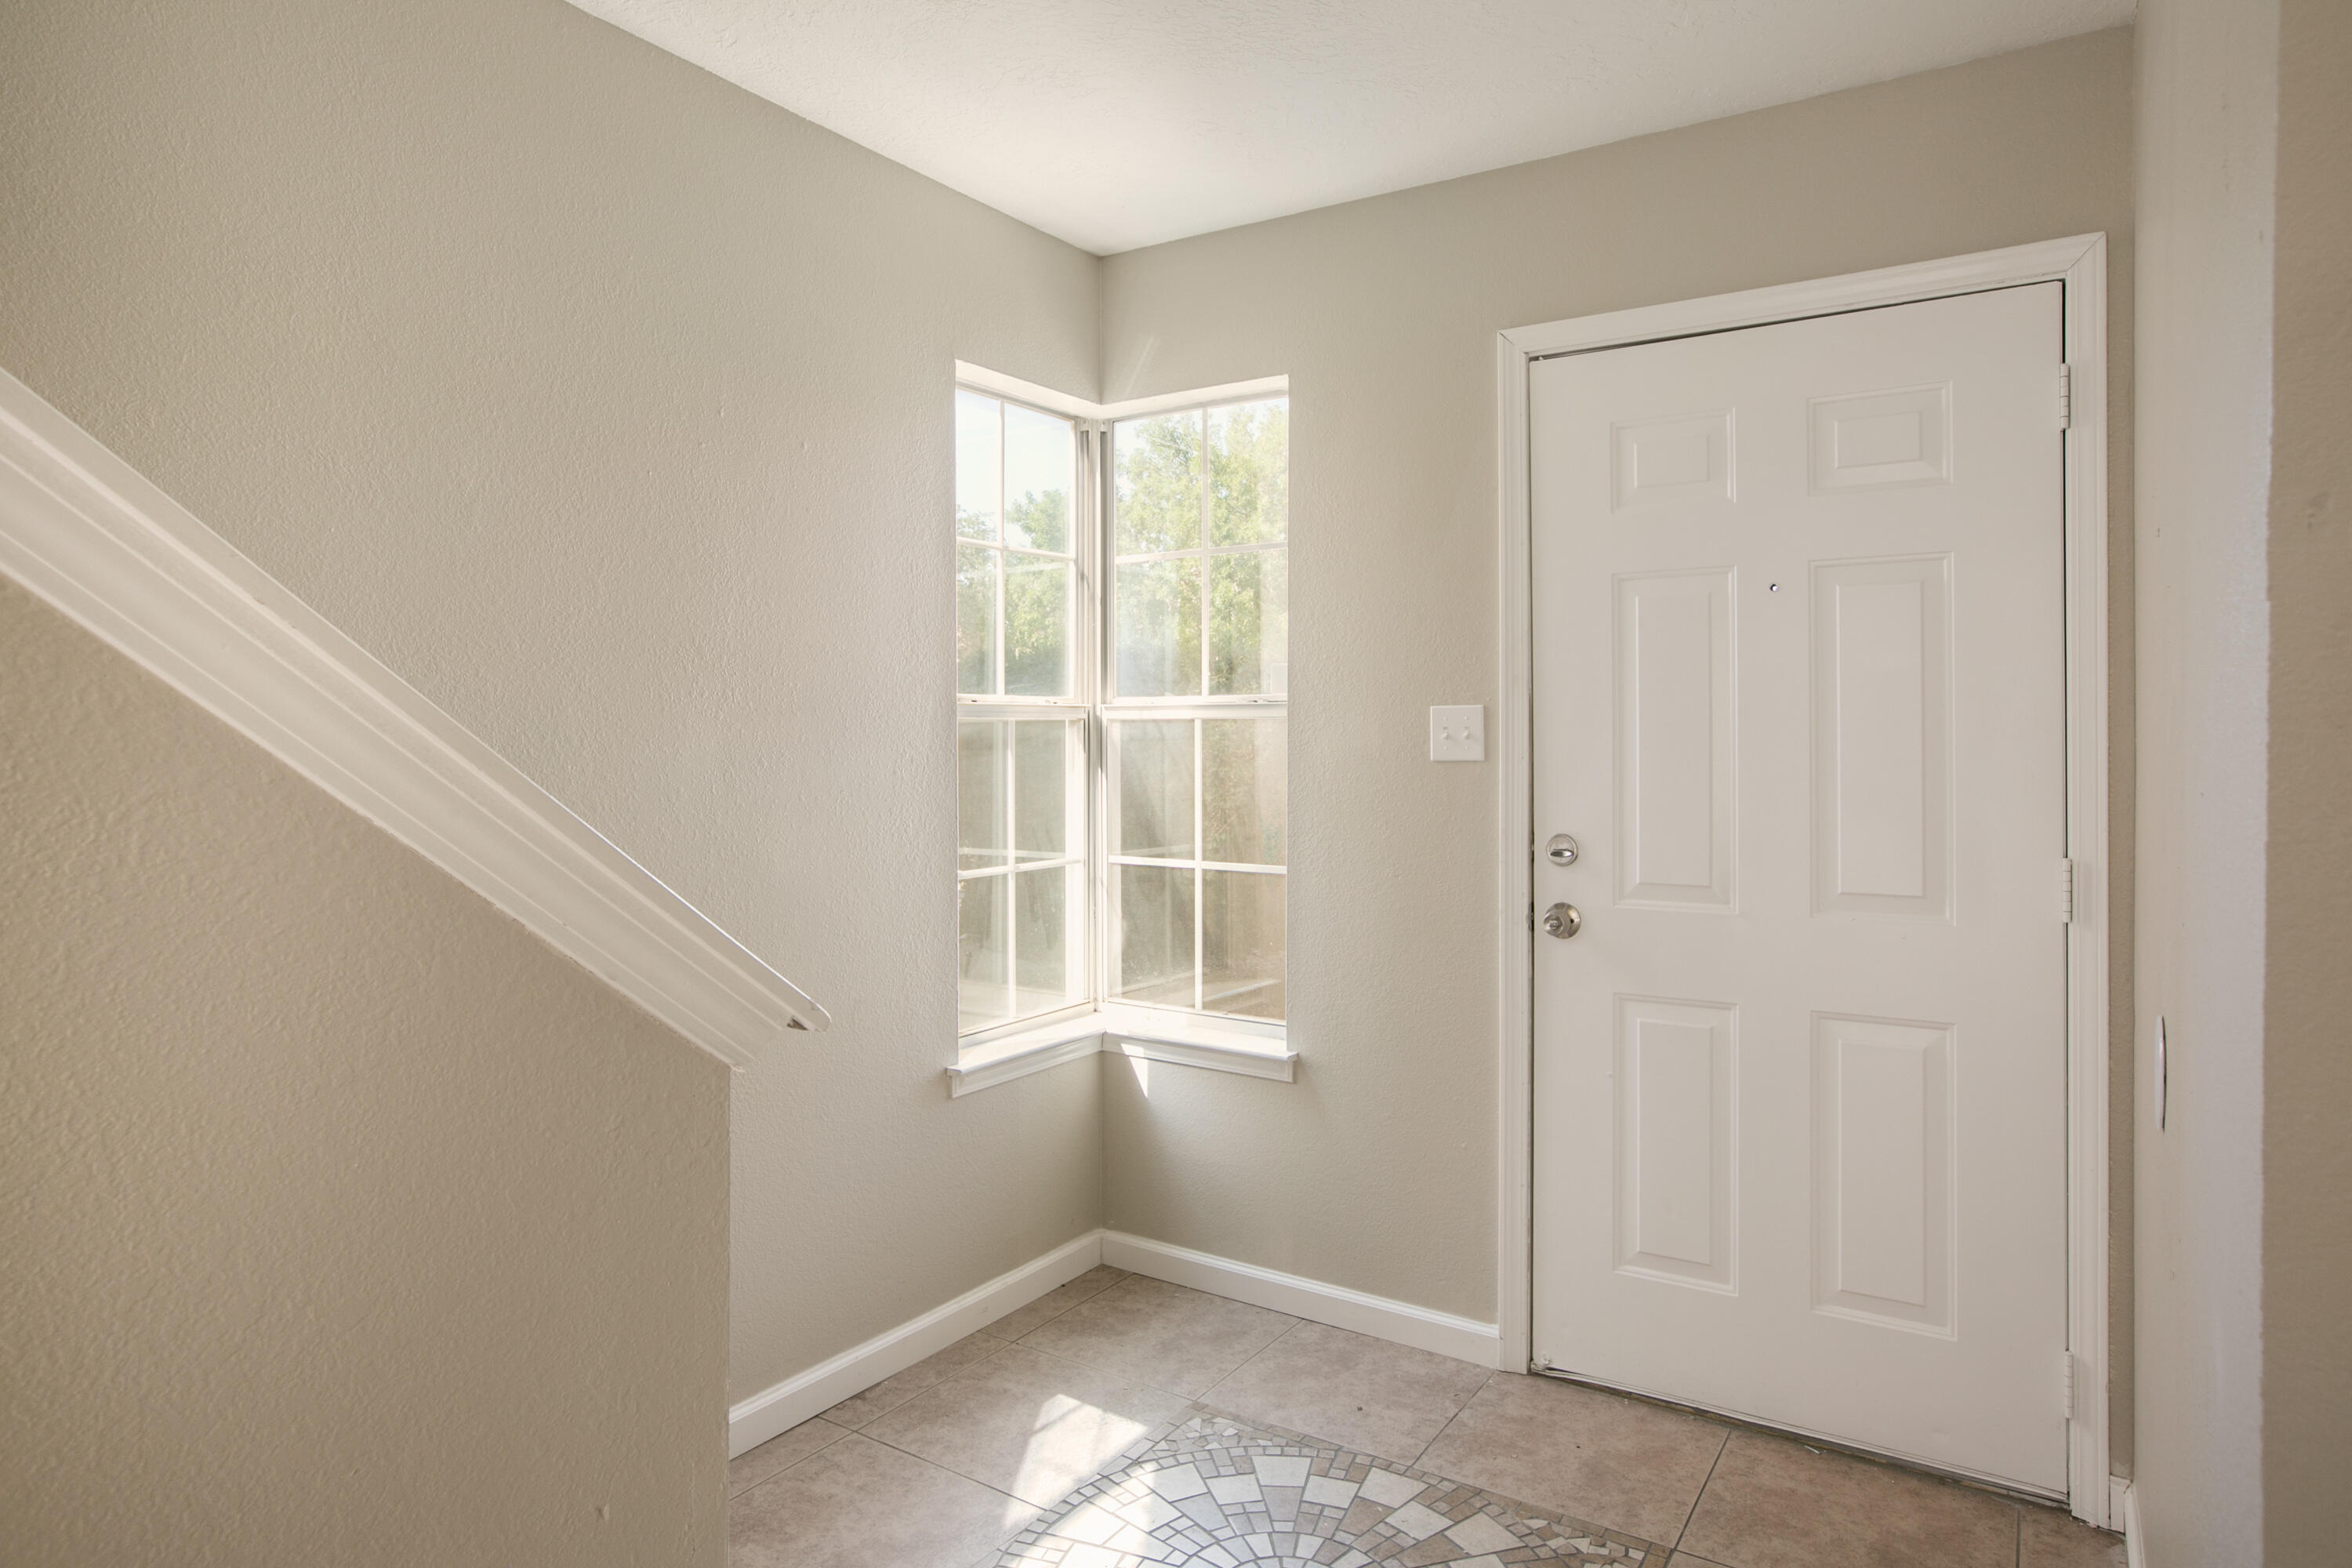 Updated Townhouse in the Northwest Heights with easy access to I40 and Coors. 3 bedrooms, 3 bathrooms and new interior paint. Updates include tile, carpet in the upstairs, Kitchen Cabinets w/ Oceania Quartz. Bathrooms have been updated with tile, vanities, and fixtures. 2 car garage, refrigerated air, walk in master closet, and more!